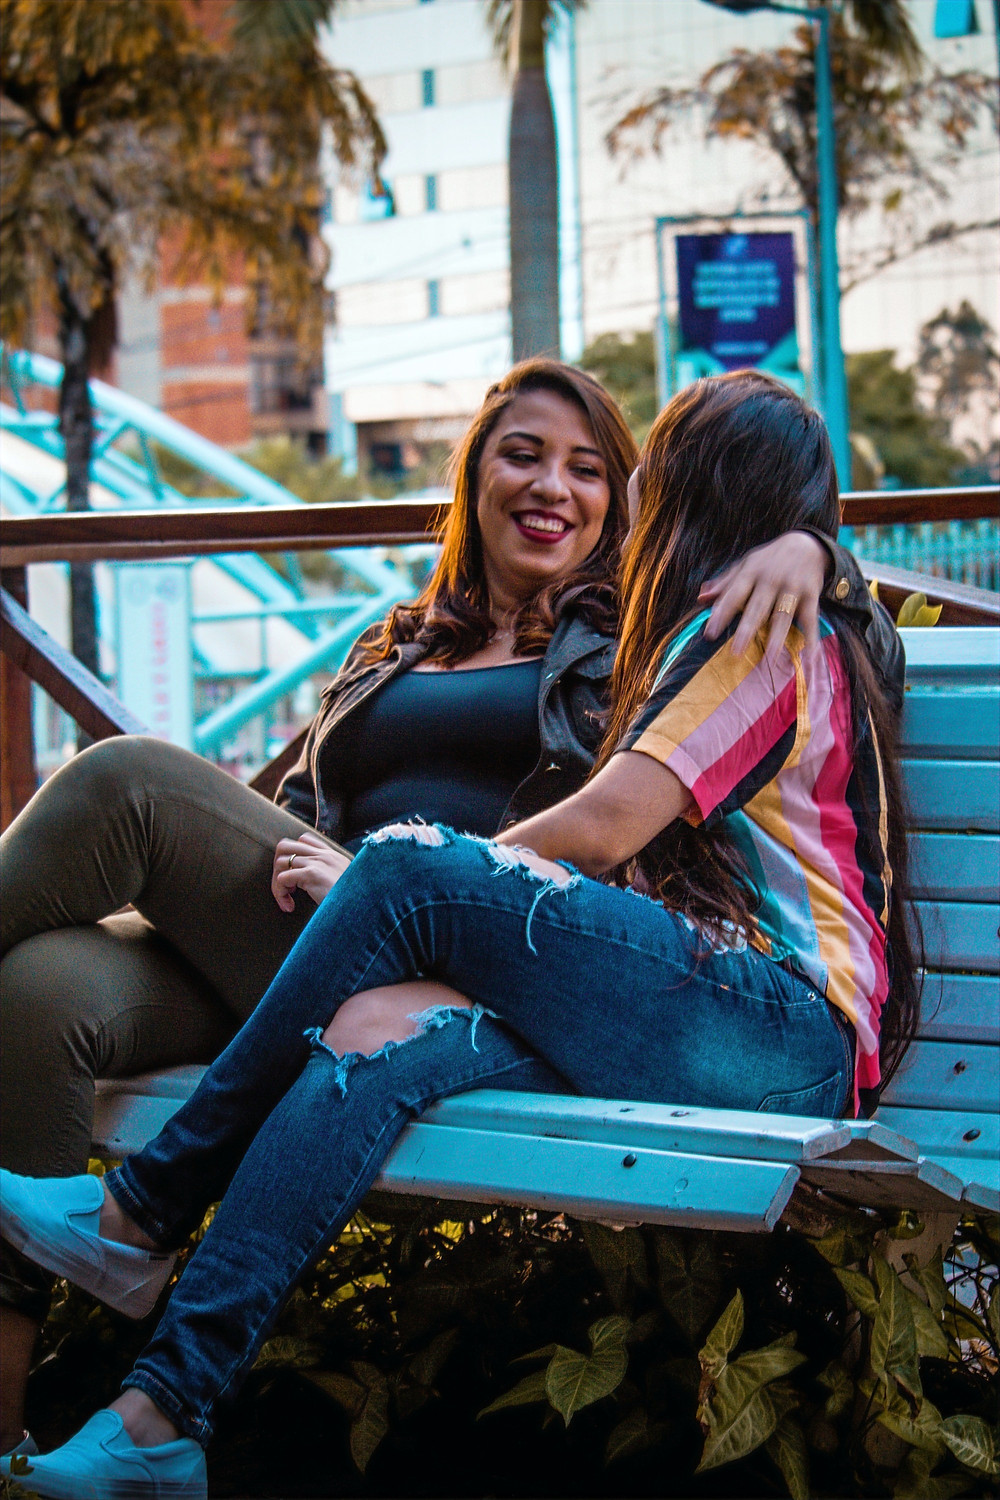 Two people sit on a bench and smile while they empathize with each others' experiences.